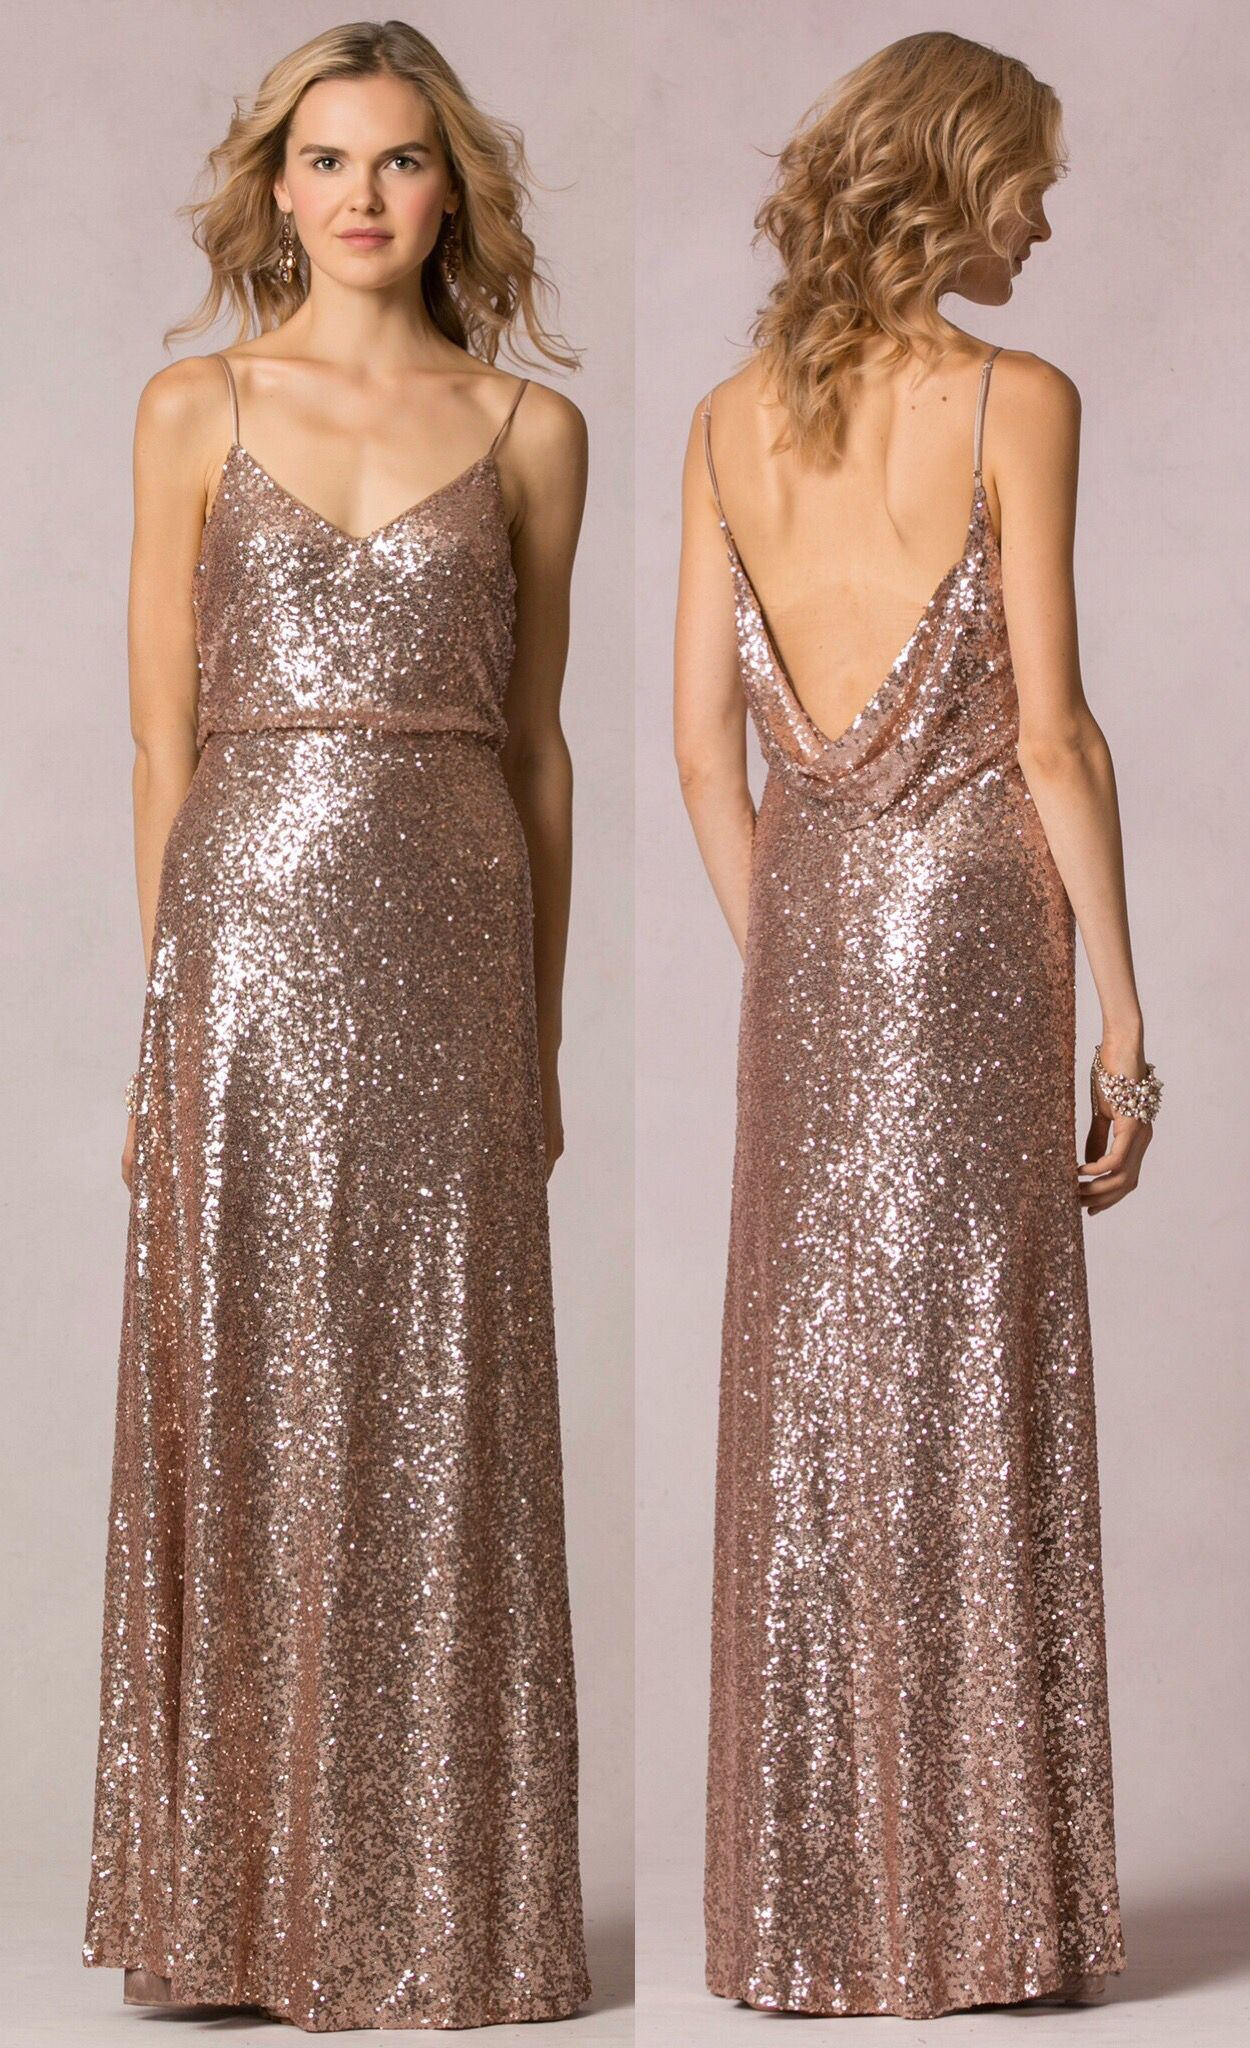 Sparkly Gowns